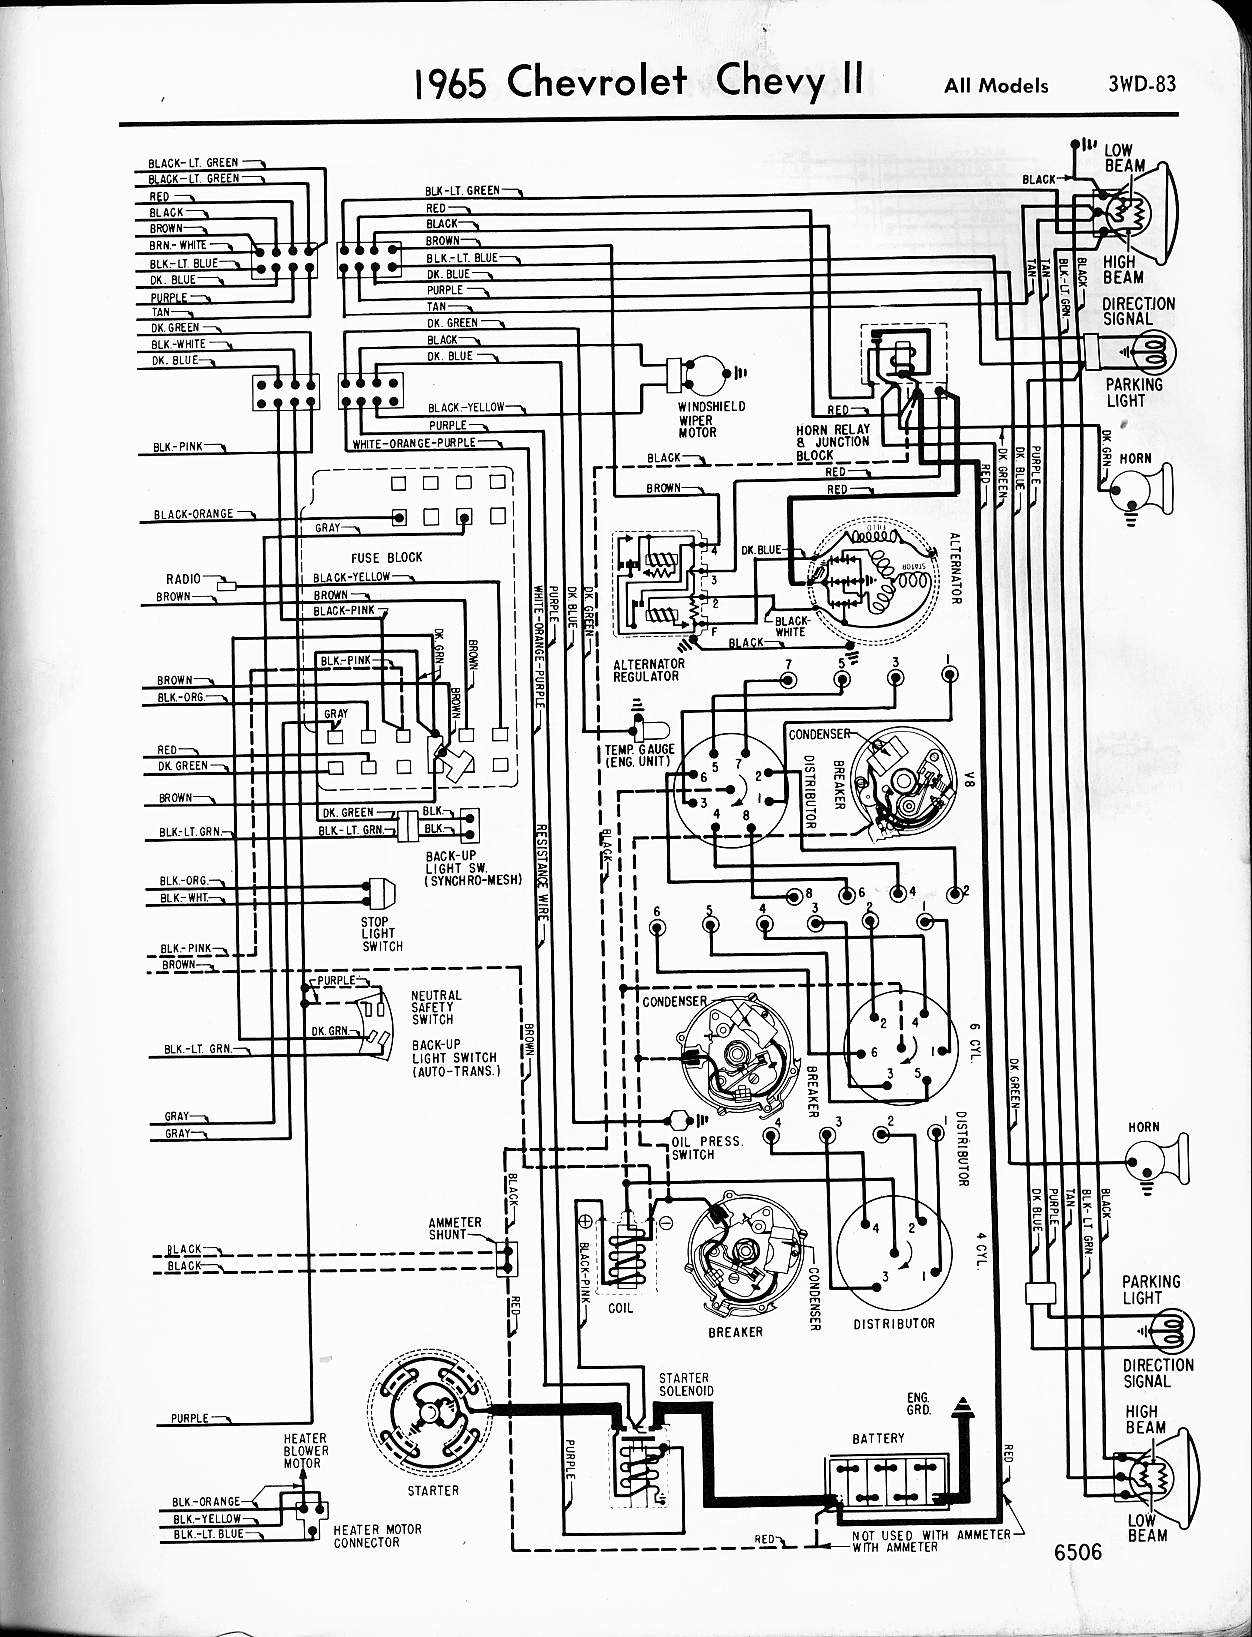 MWireChev65_3WD 083 1965 c10 wiring diagram 66 chevy c10 alternator wiring diagram 1965 ford falcon wiring diagram at aneh.co